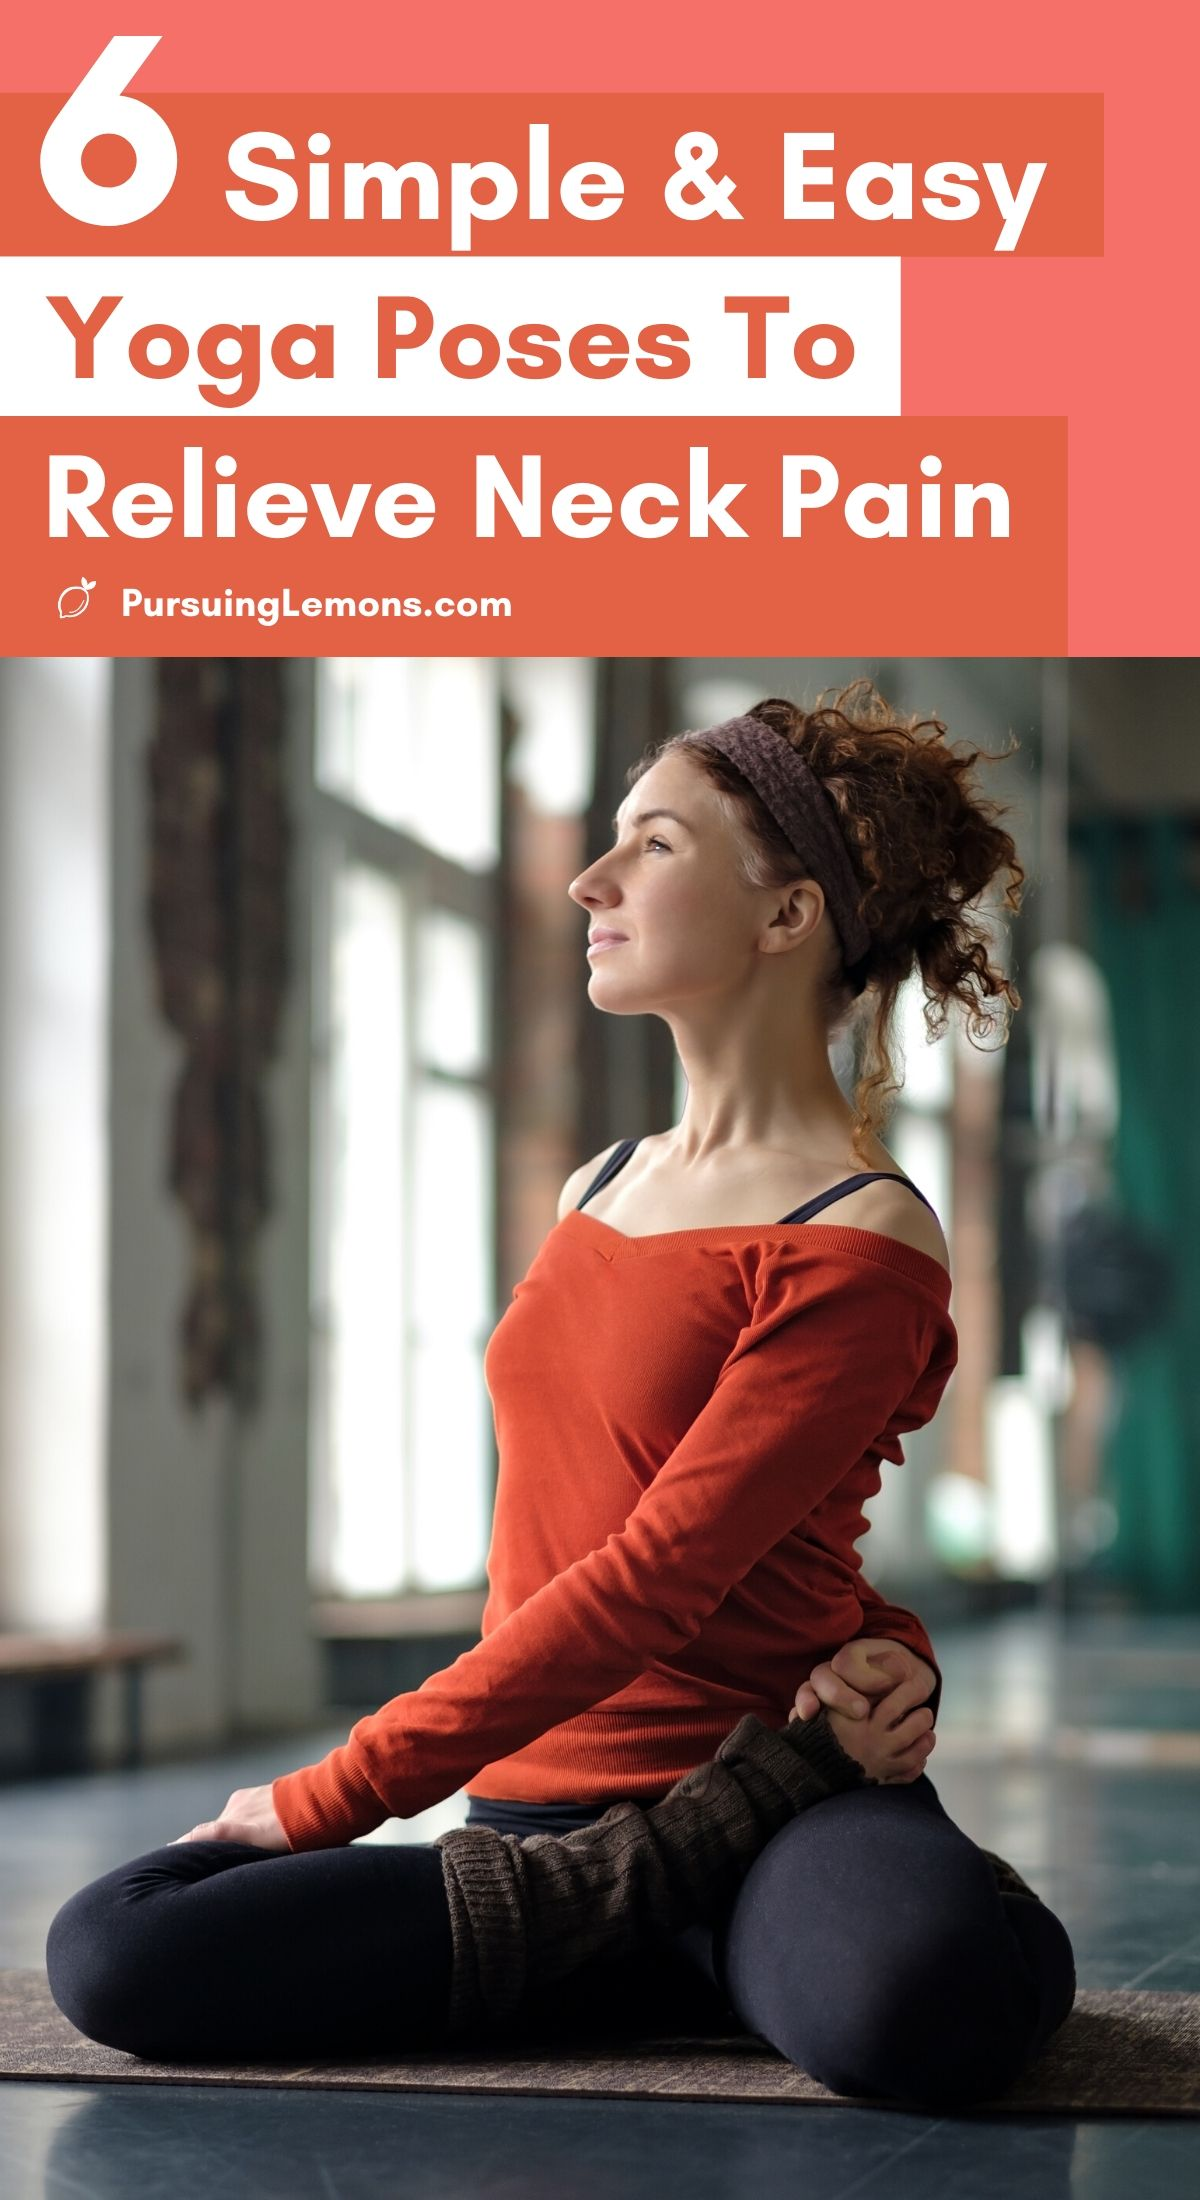 6 Easy Yoga Poses To Relieve Neck Pain   Feeling tense in the neck? Start practicing this yoga sequence every day to relieve neck pain. Make sure to do them frequently and they will help you reduce your neck stiffness and avoid neck pains in the future. #yoga #yogaposes #neckpain